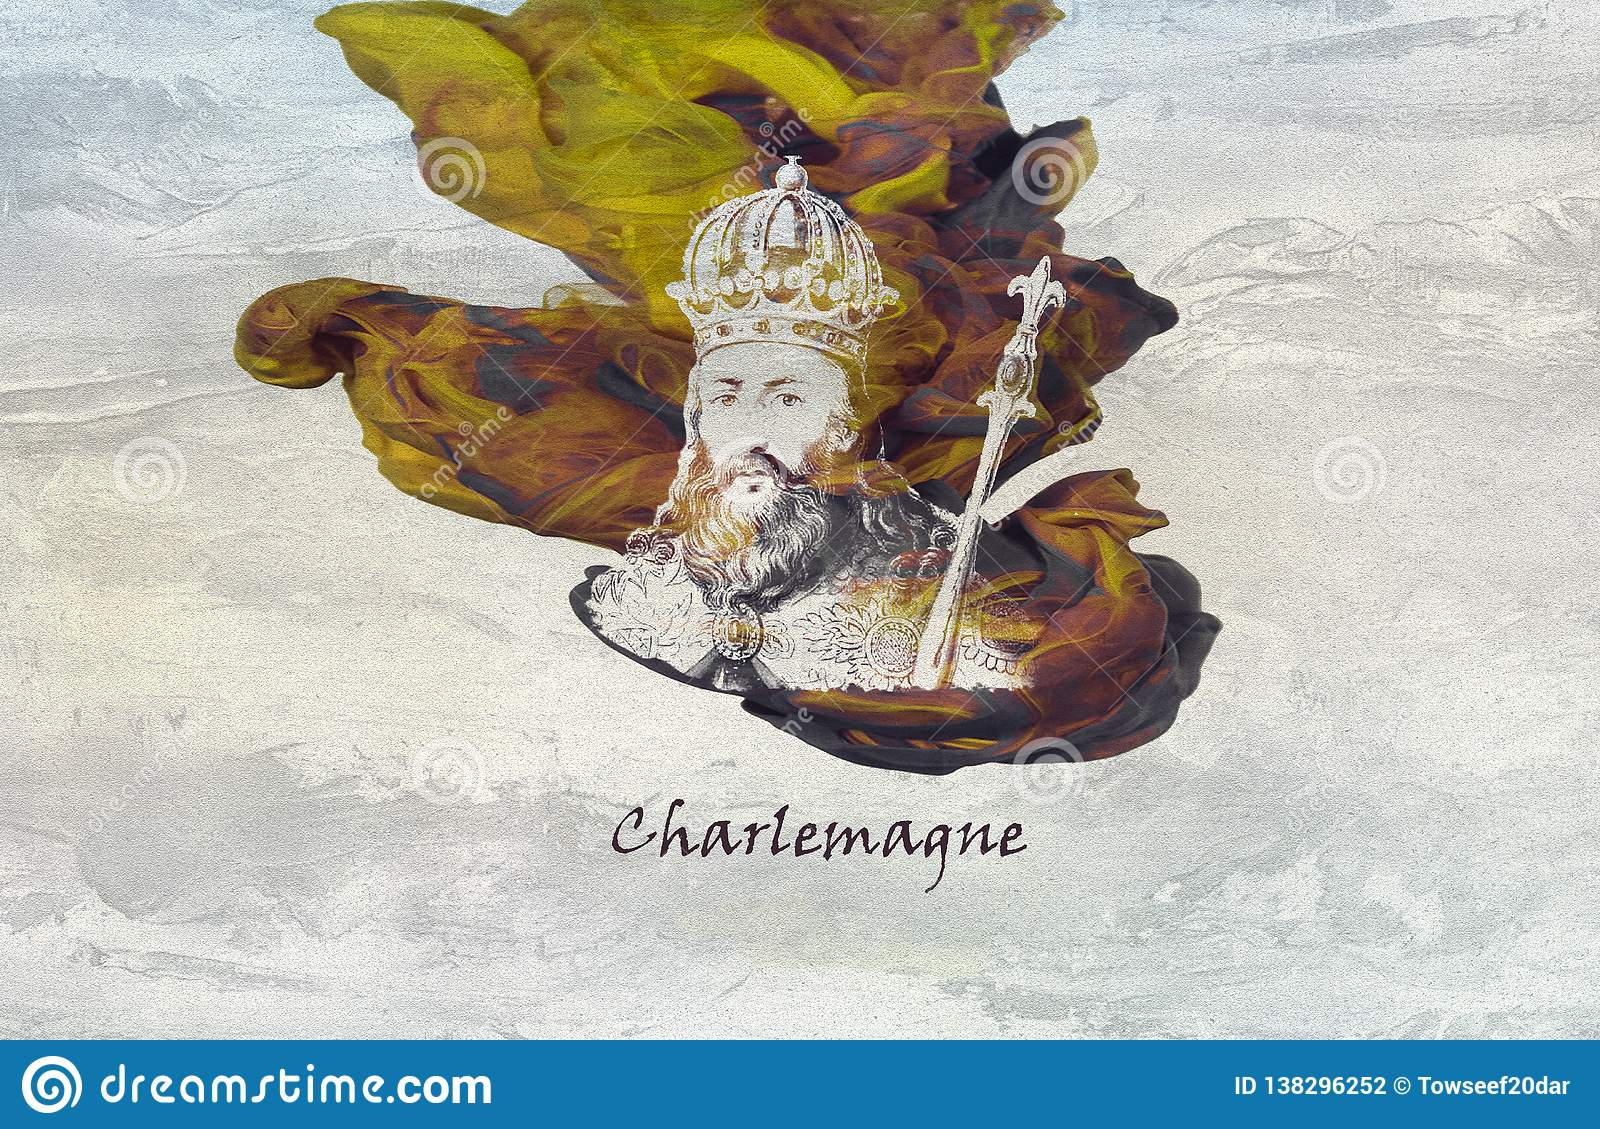 Charlemagne ou Charles The Great